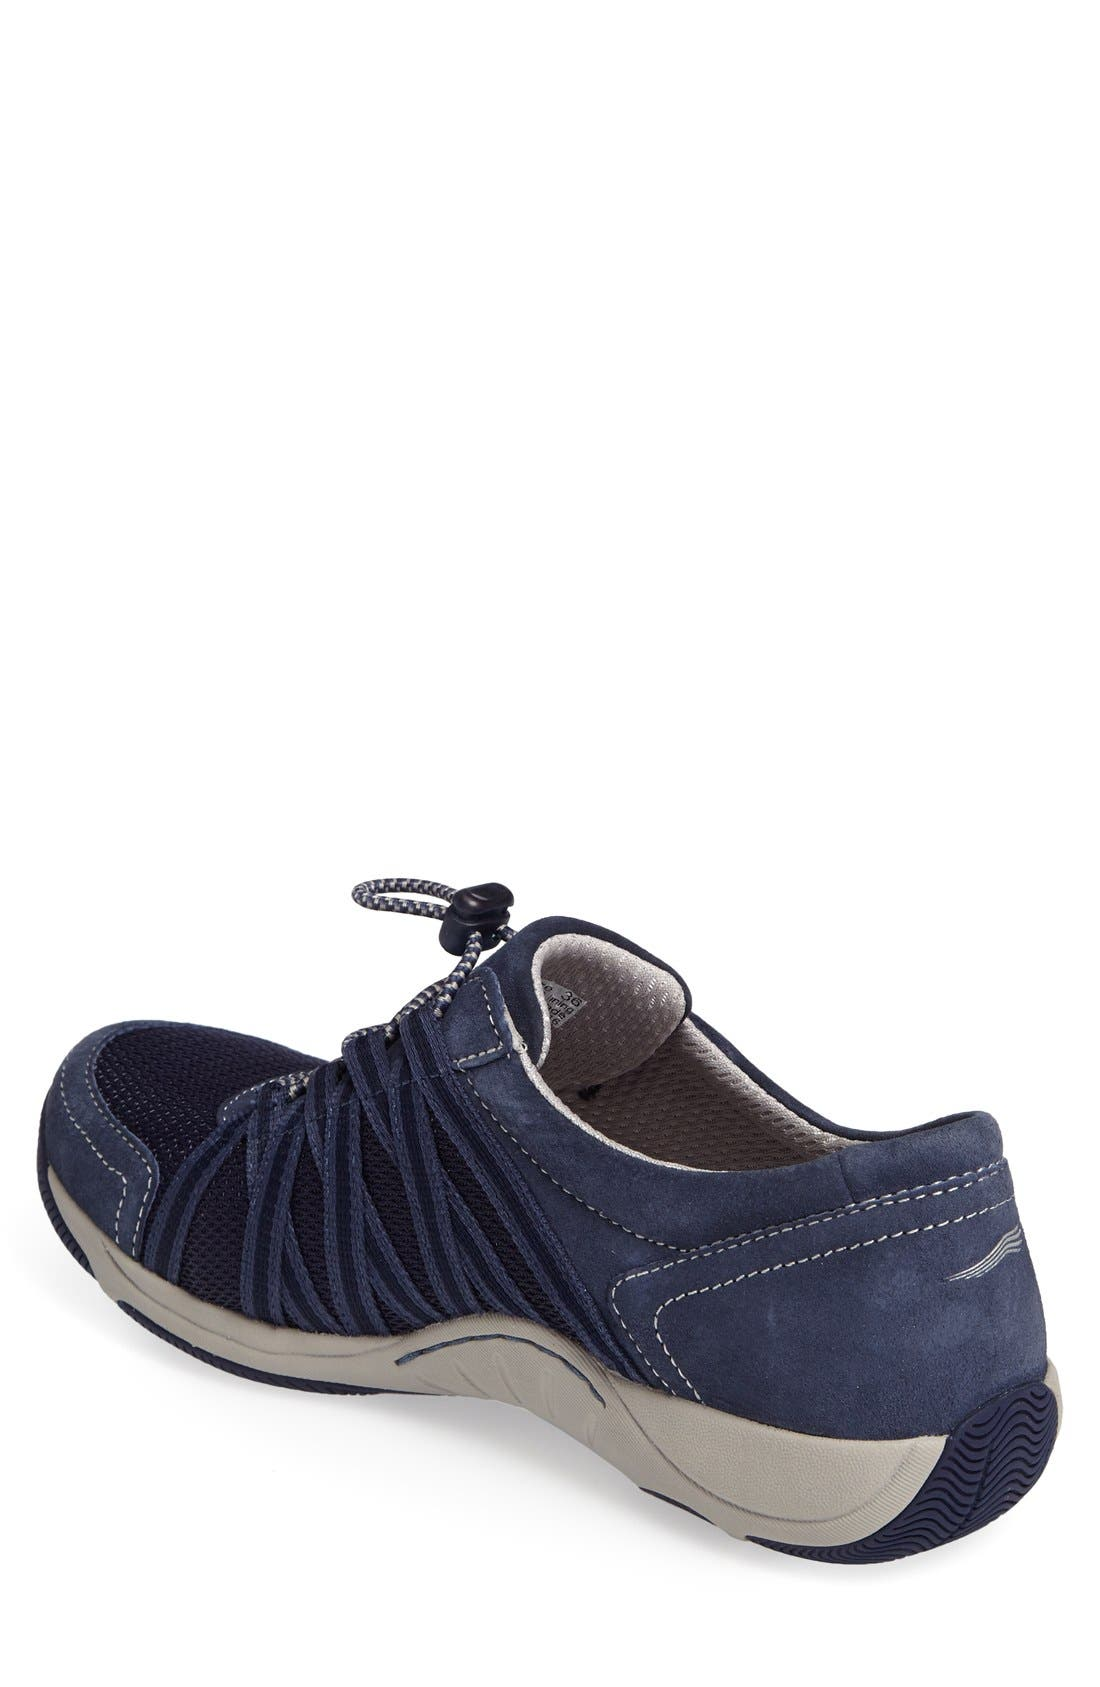 Halifax Collection Honor Sneaker,                             Alternate thumbnail 44, color,